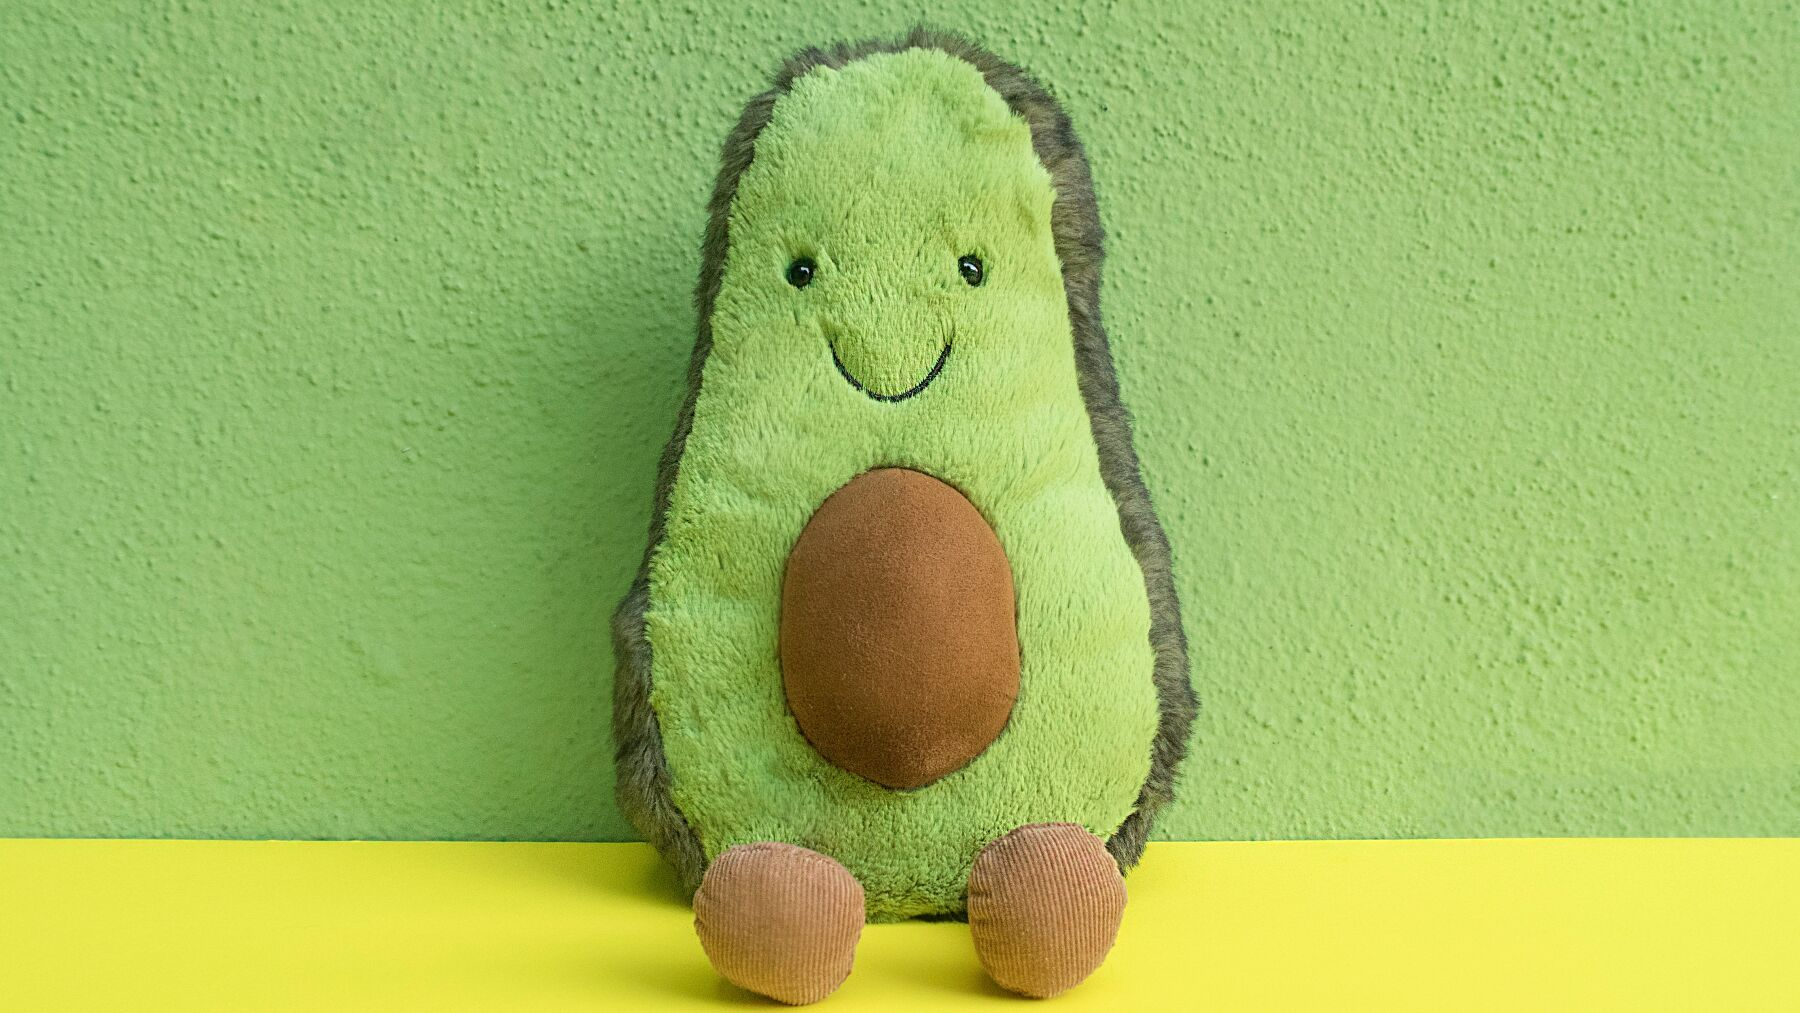 Smiling avocado plush toy